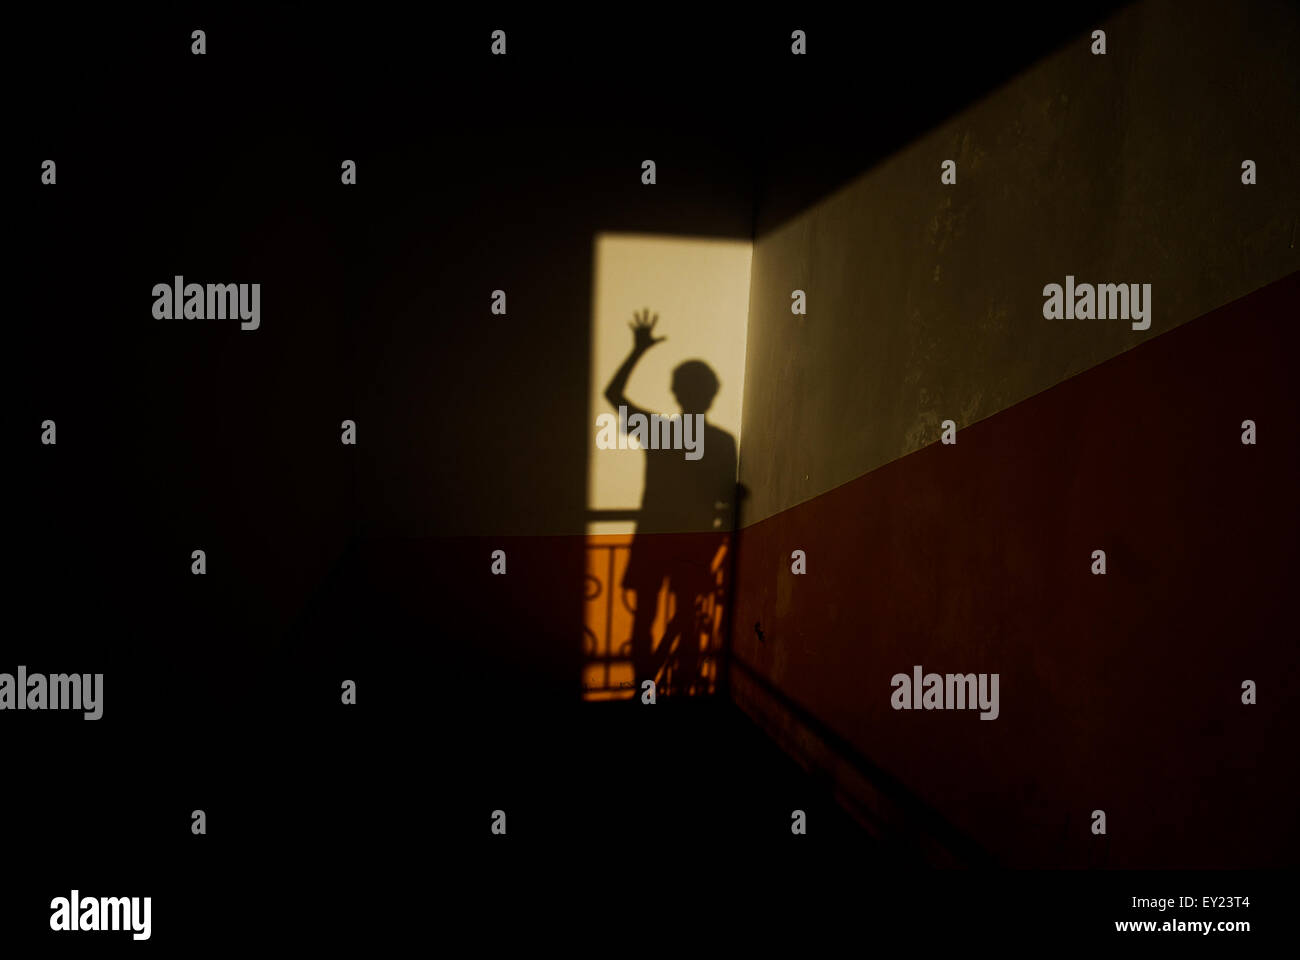 Shadow of a man projected on the wall. - Stock Image